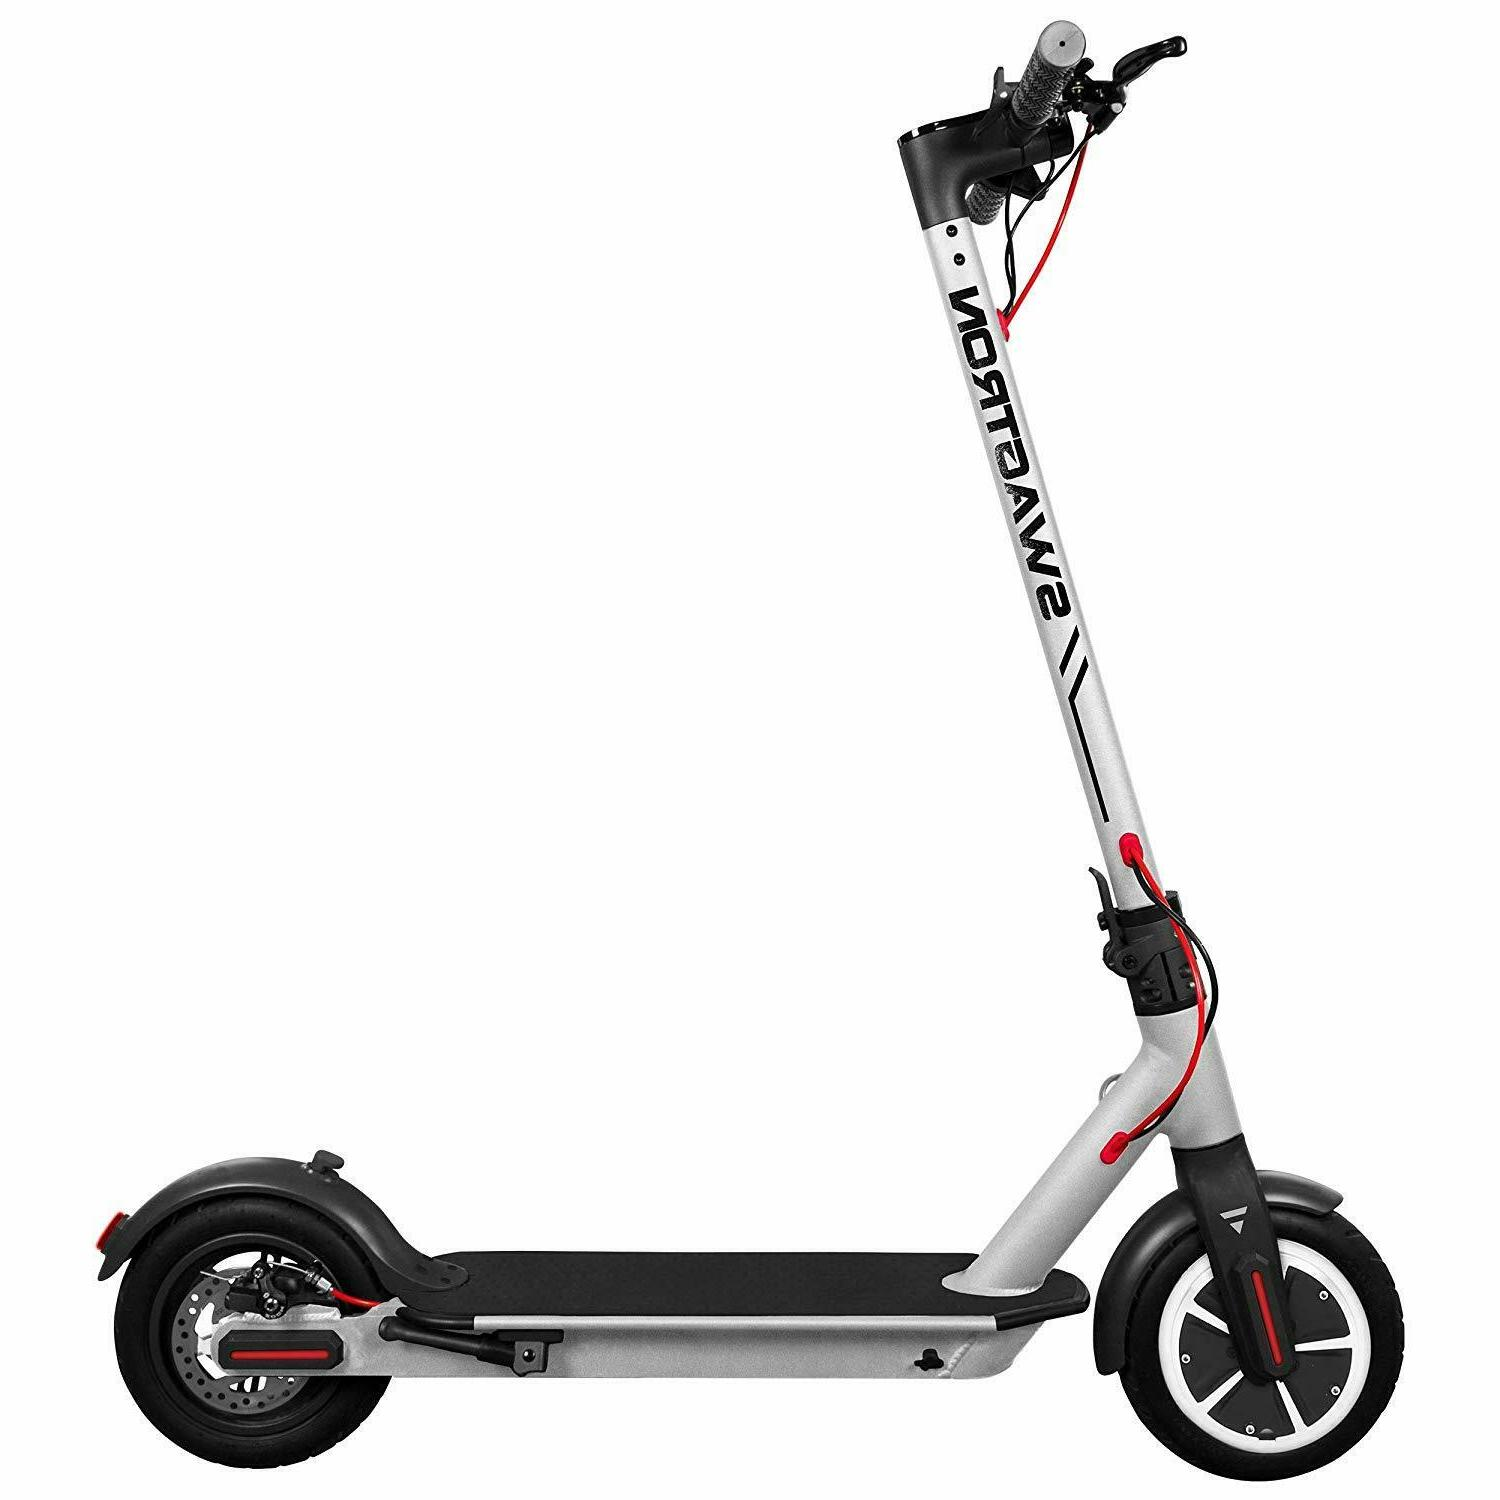 Swagtron Swagger 5 Portable Folding High Speed Electric Scoo